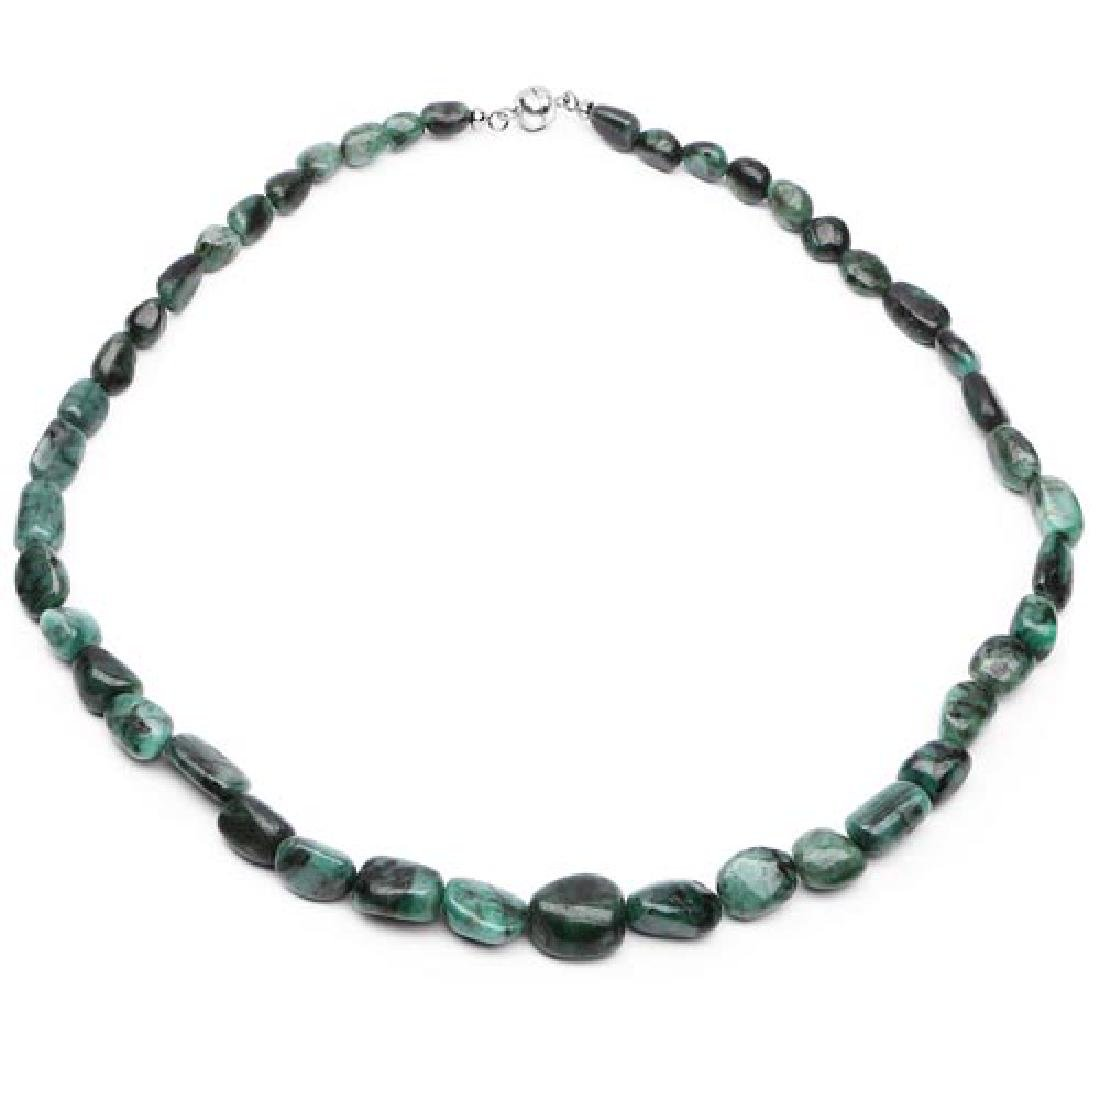 372.00 Carat Genuine Emerald .925 Sterling Silver Beads